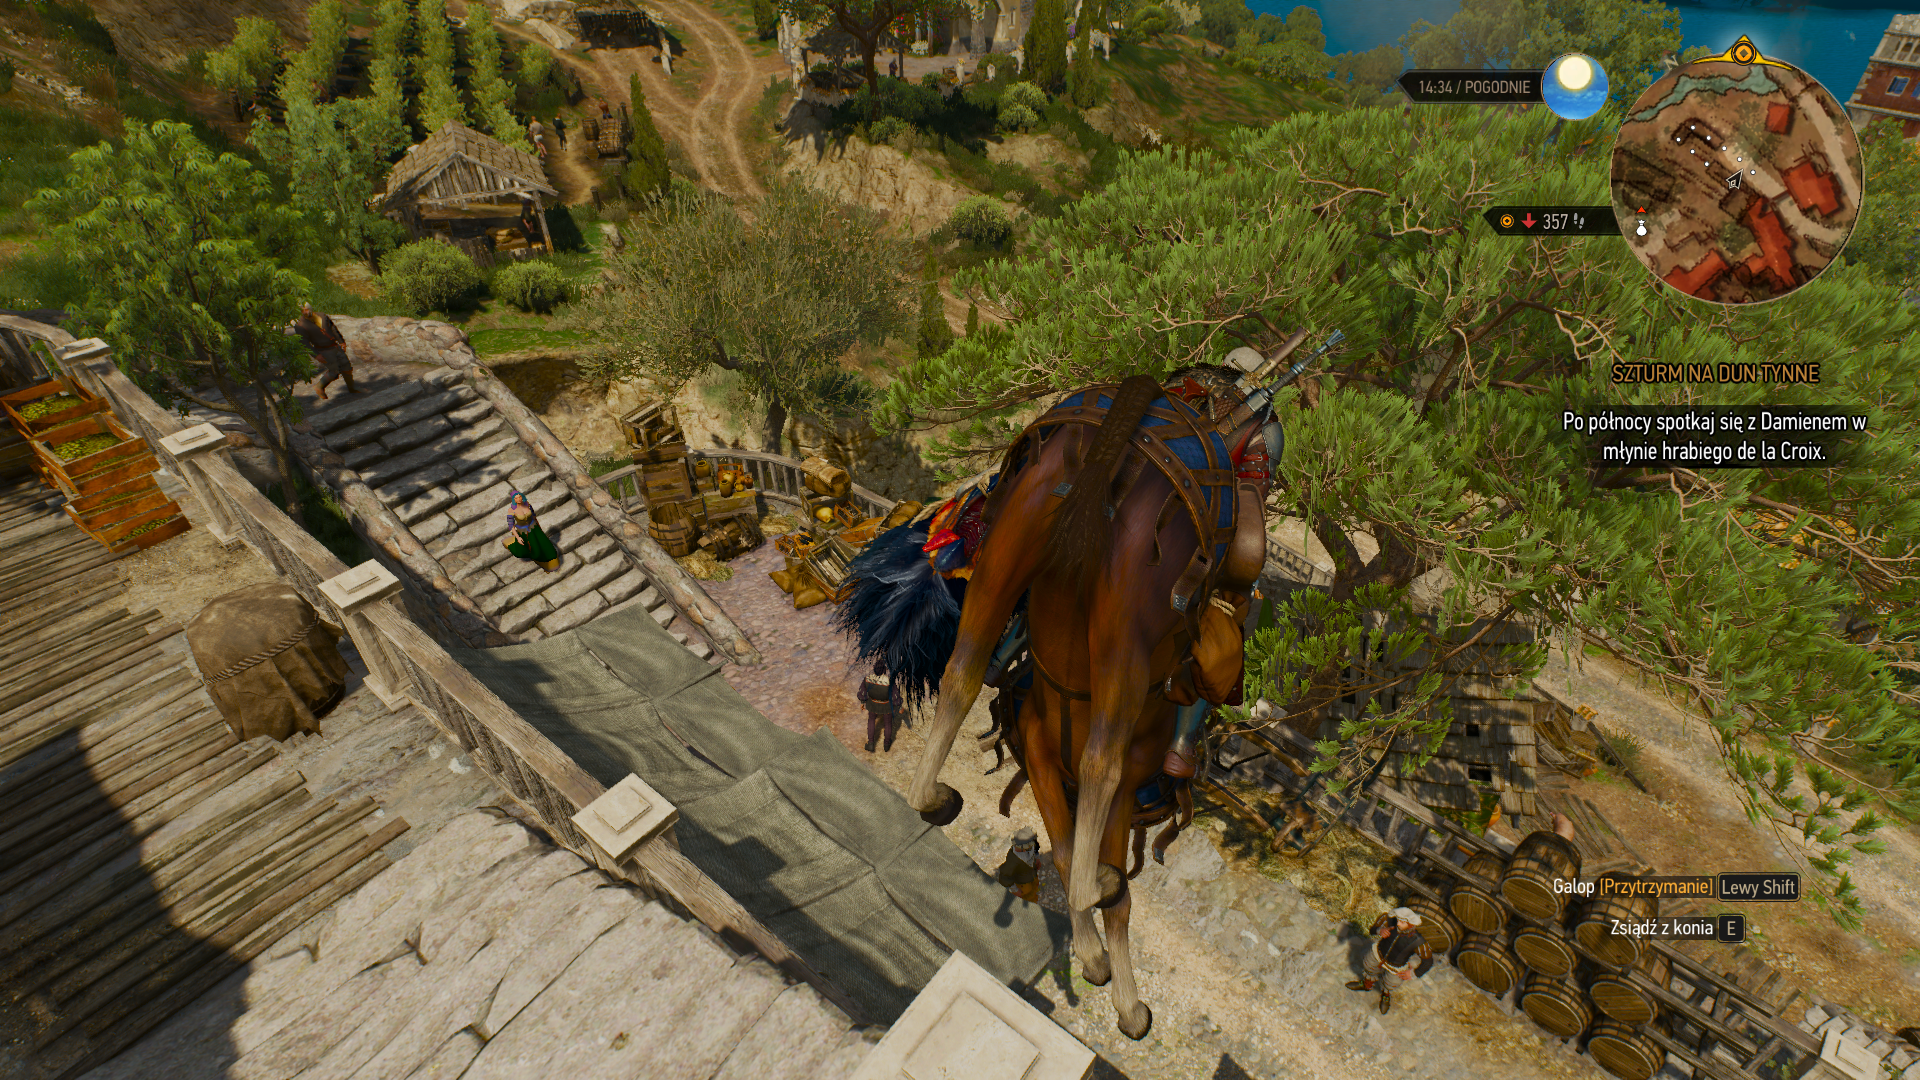 The Witcher 3 29.12.2018 18_46_45.png - Witcher 3: Wild Hunt, the